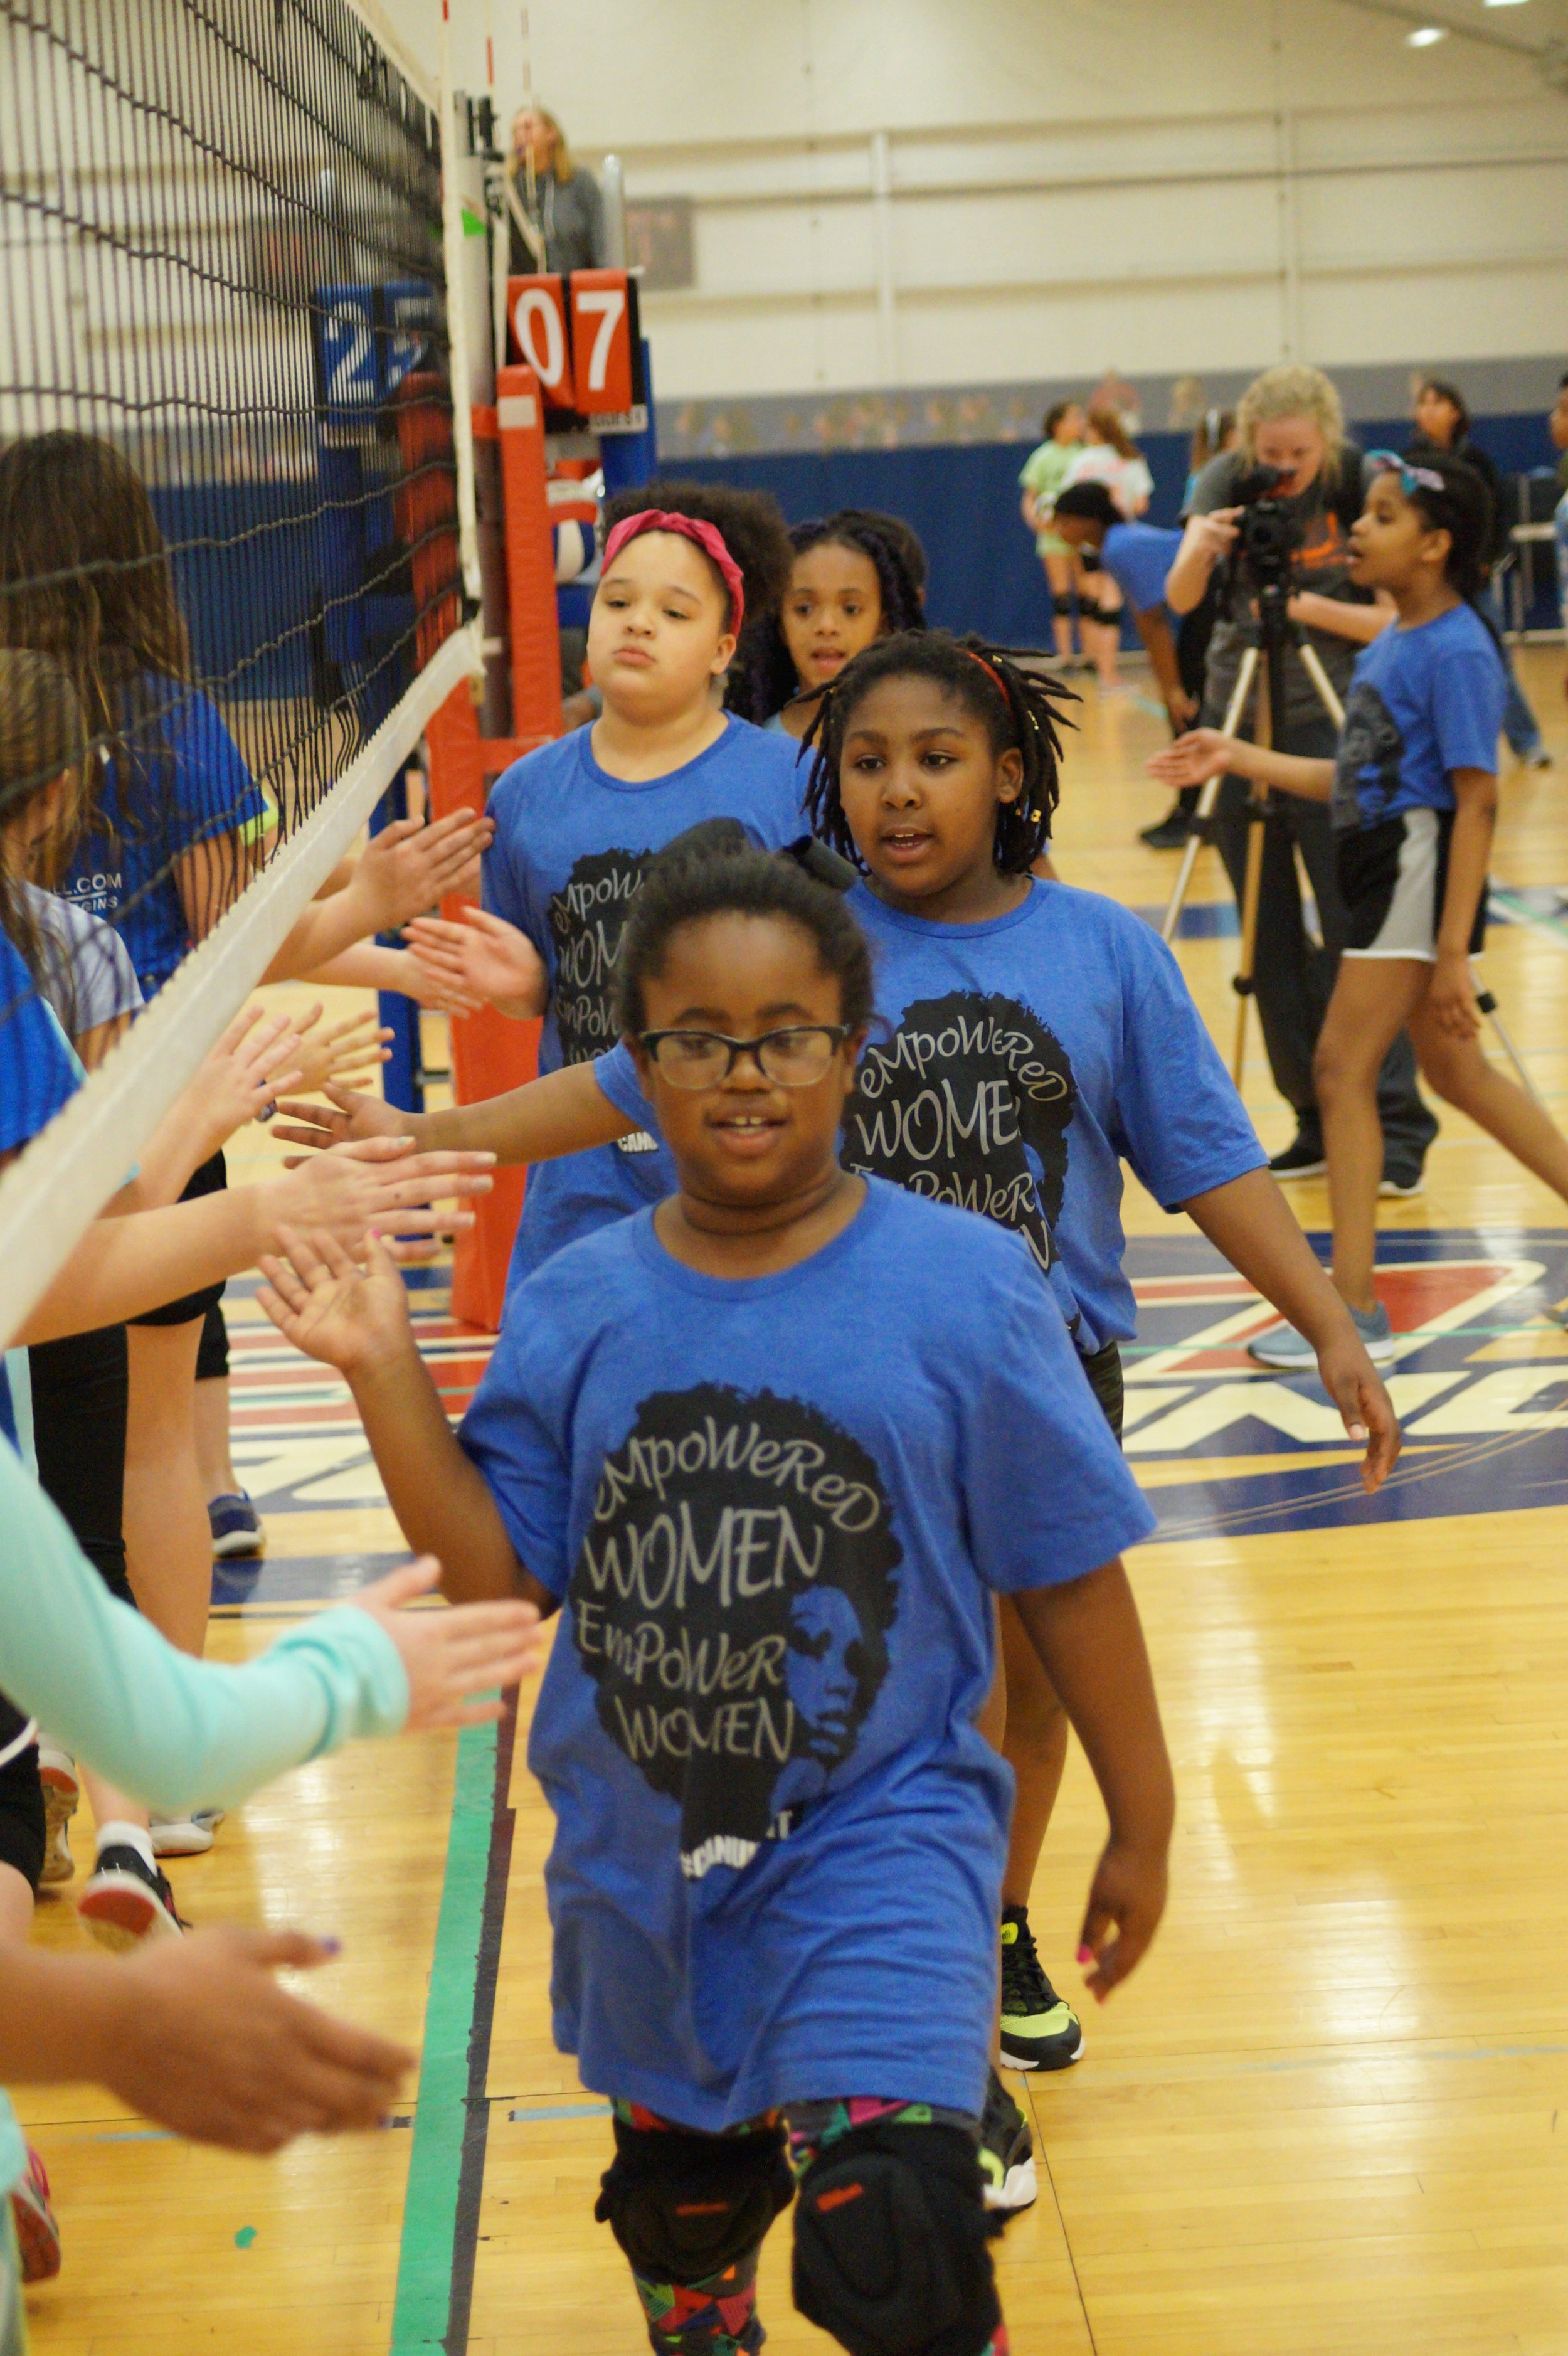 2016 DIG it! Volleyball participants shaking hands after a Friday night League Match.